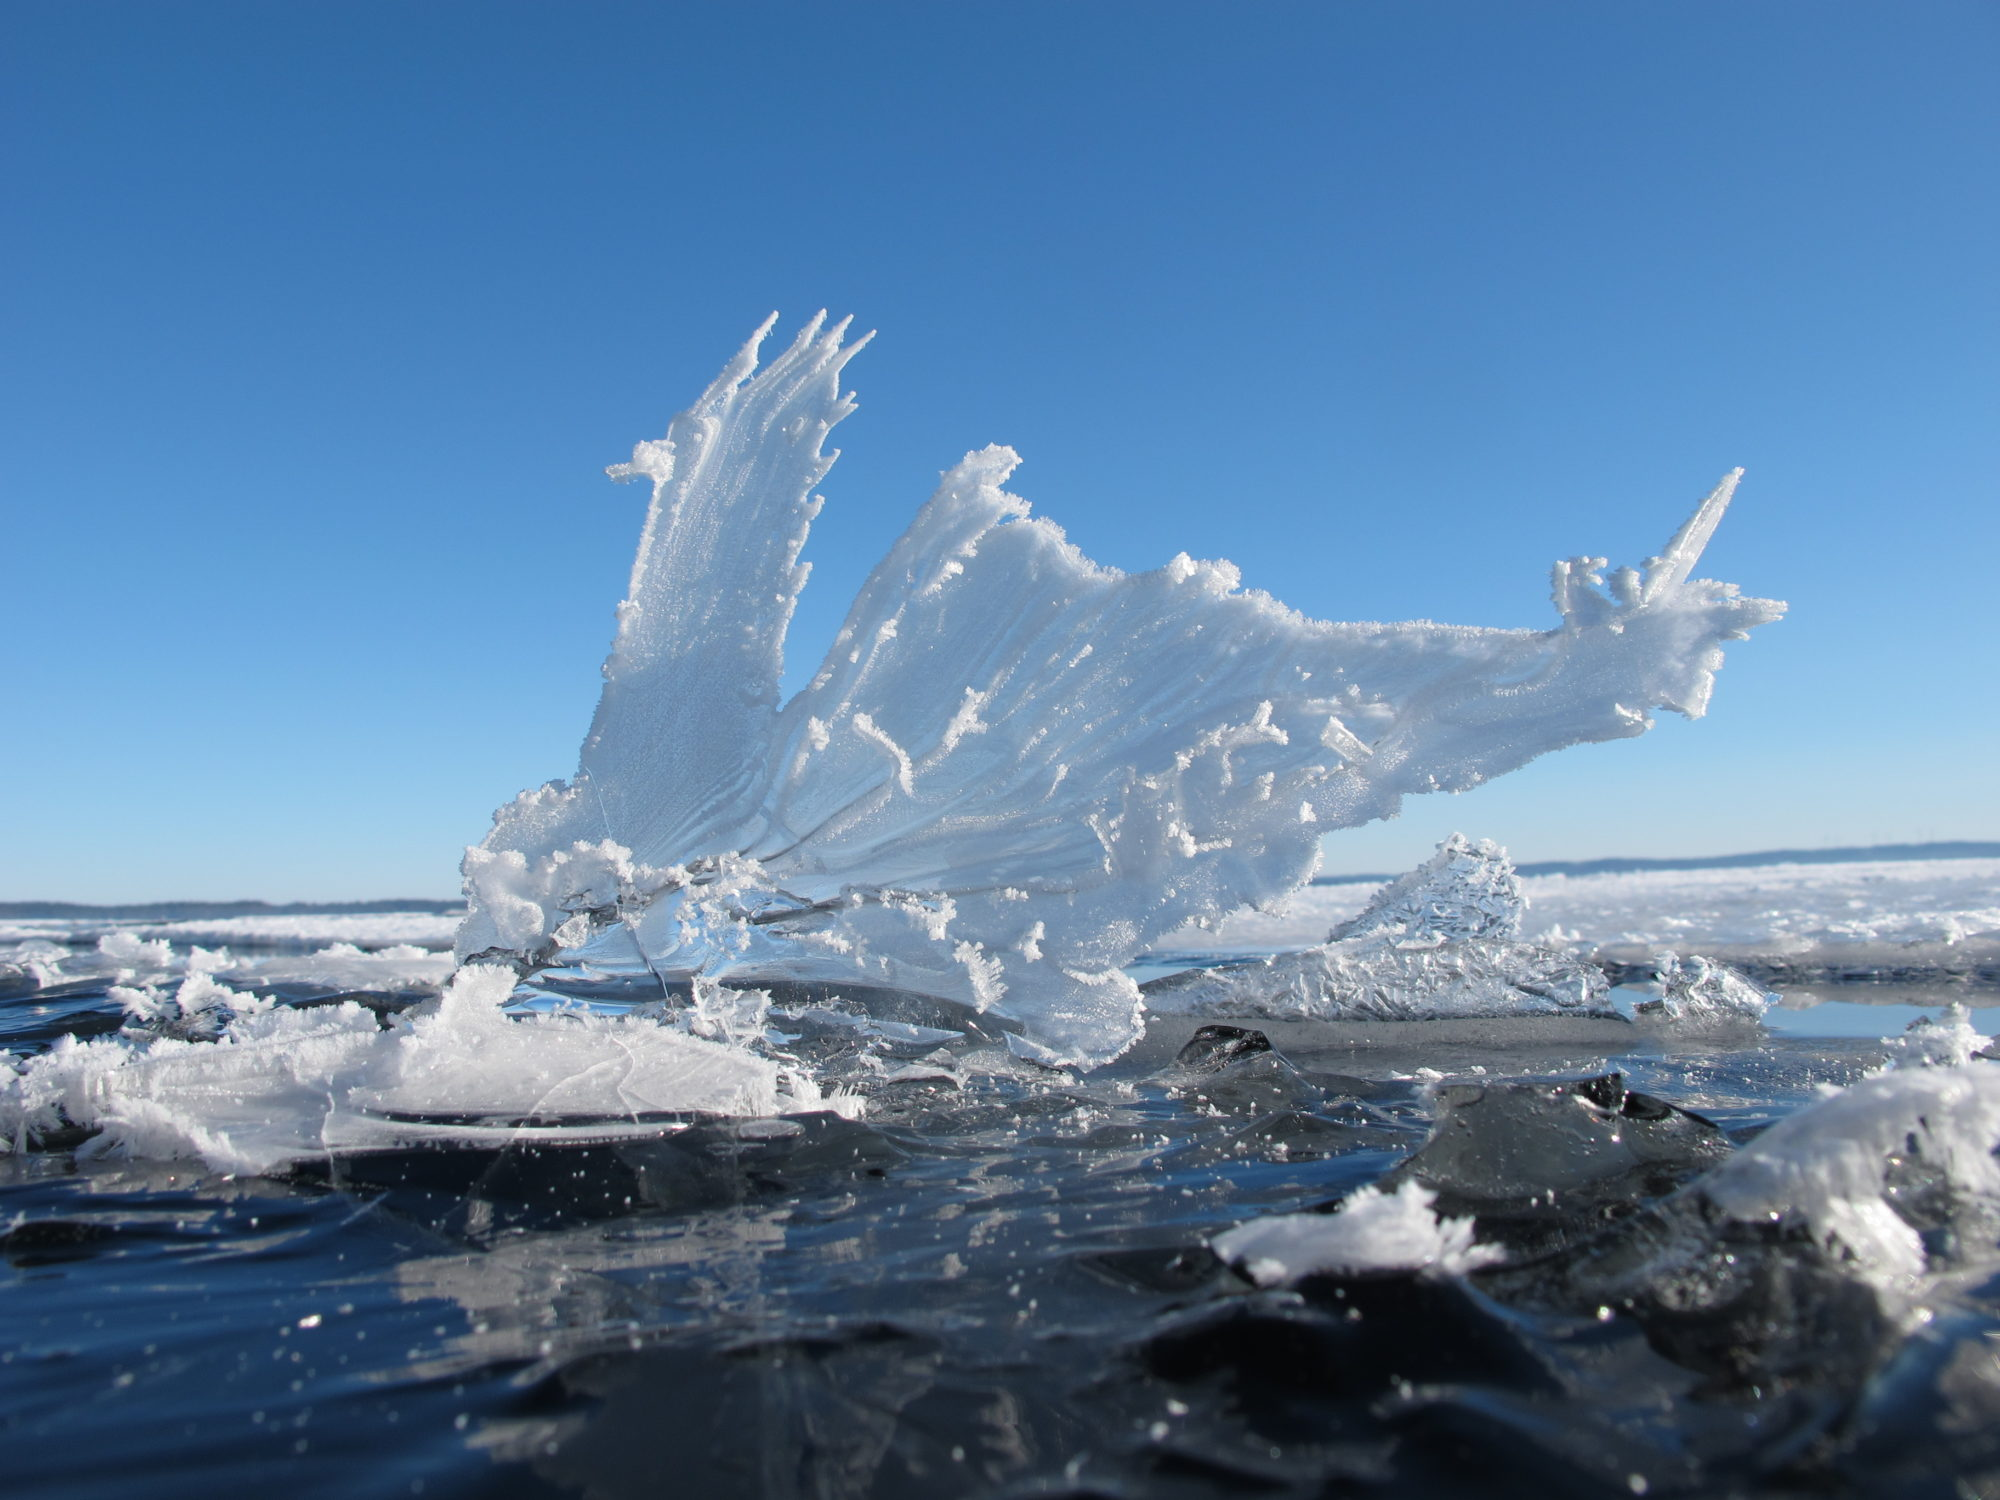 Incredible ice formation